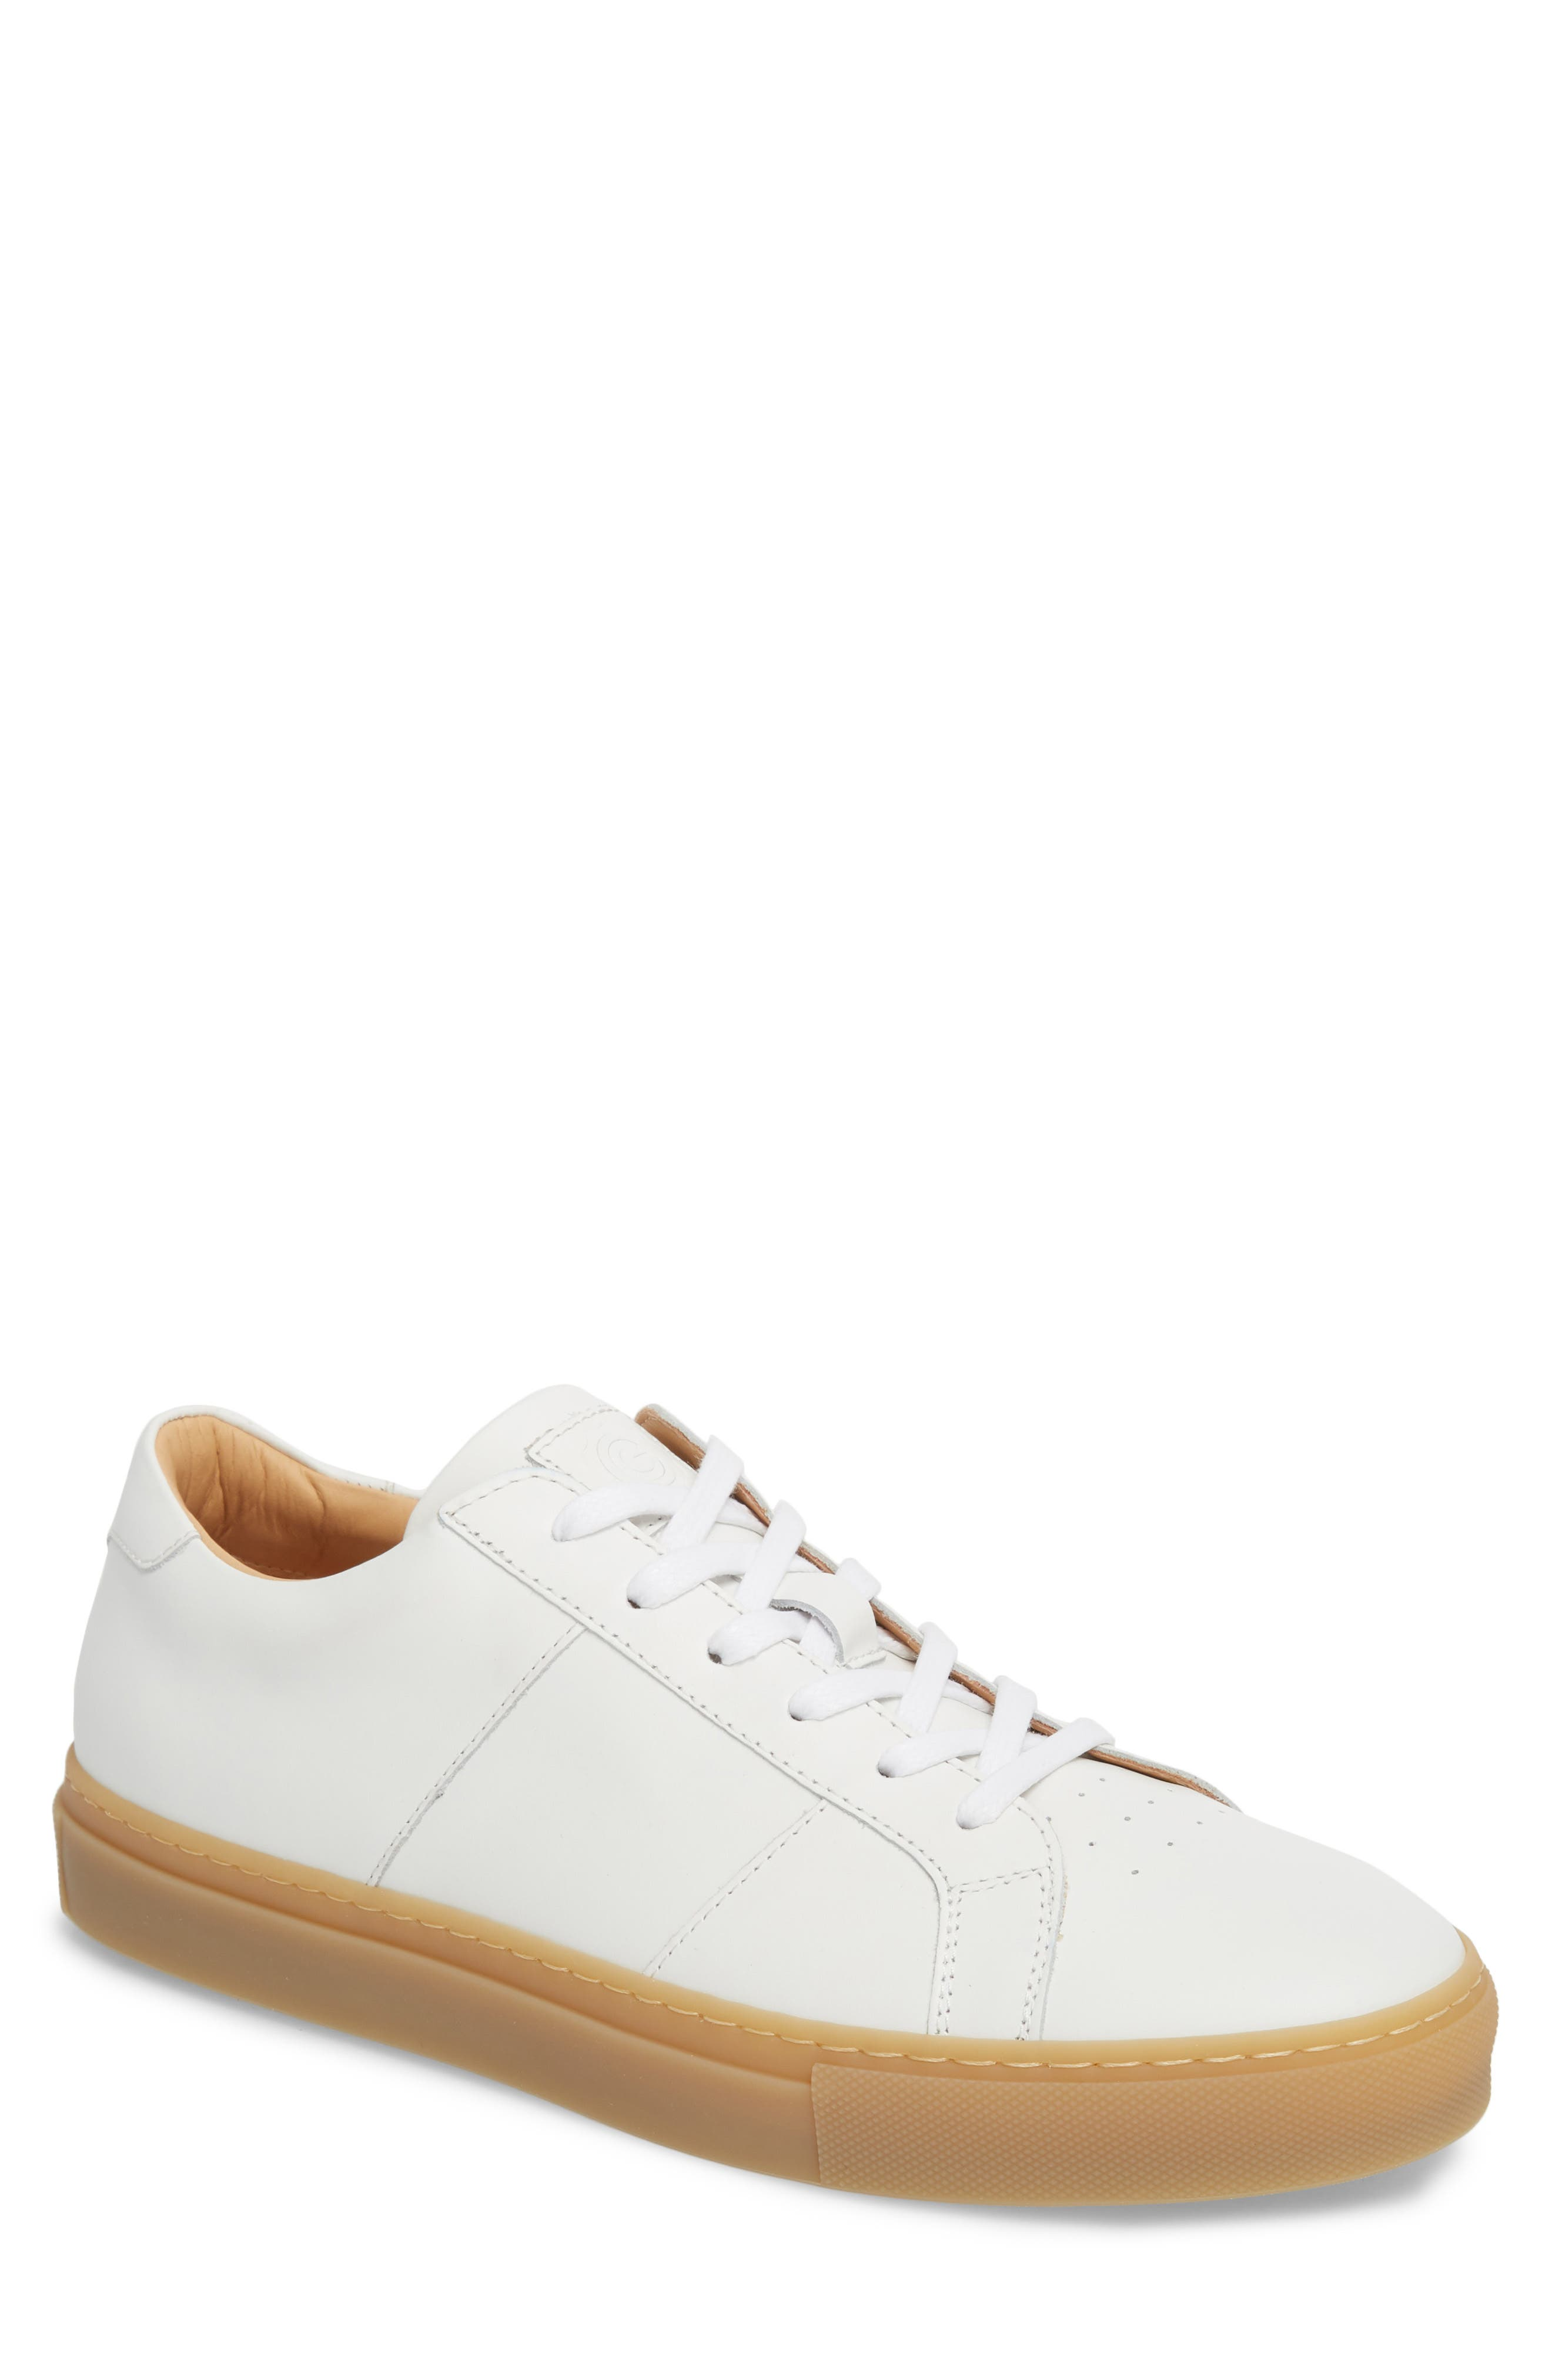 Royale Reverse Sneaker,                         Main,                         color, WHITE/ GUM